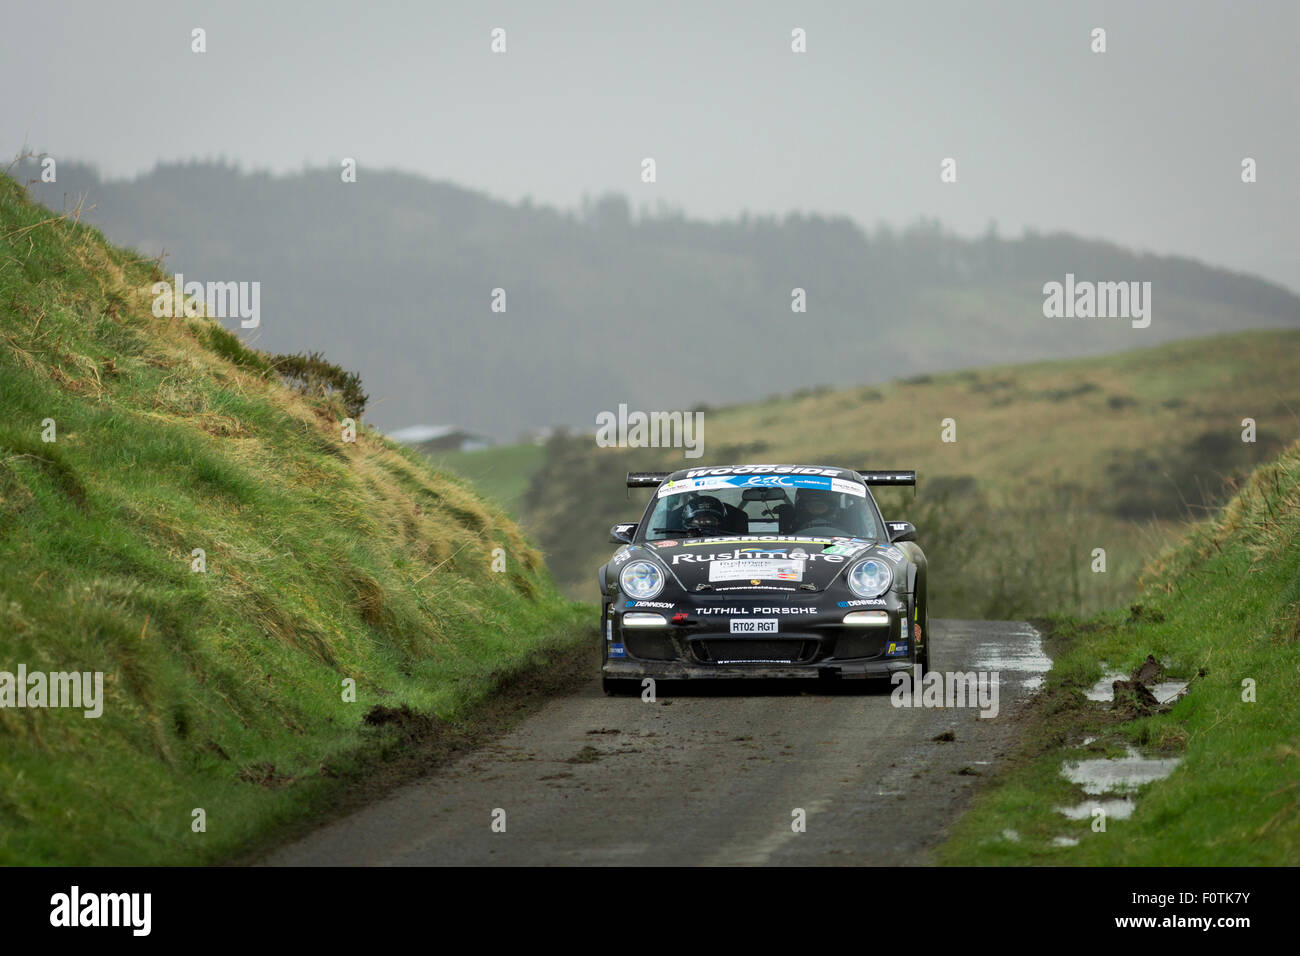 Porsche 911 Rally Car makes its way through the stages of the Circuit of Ireland Rally 2015. - Stock Image